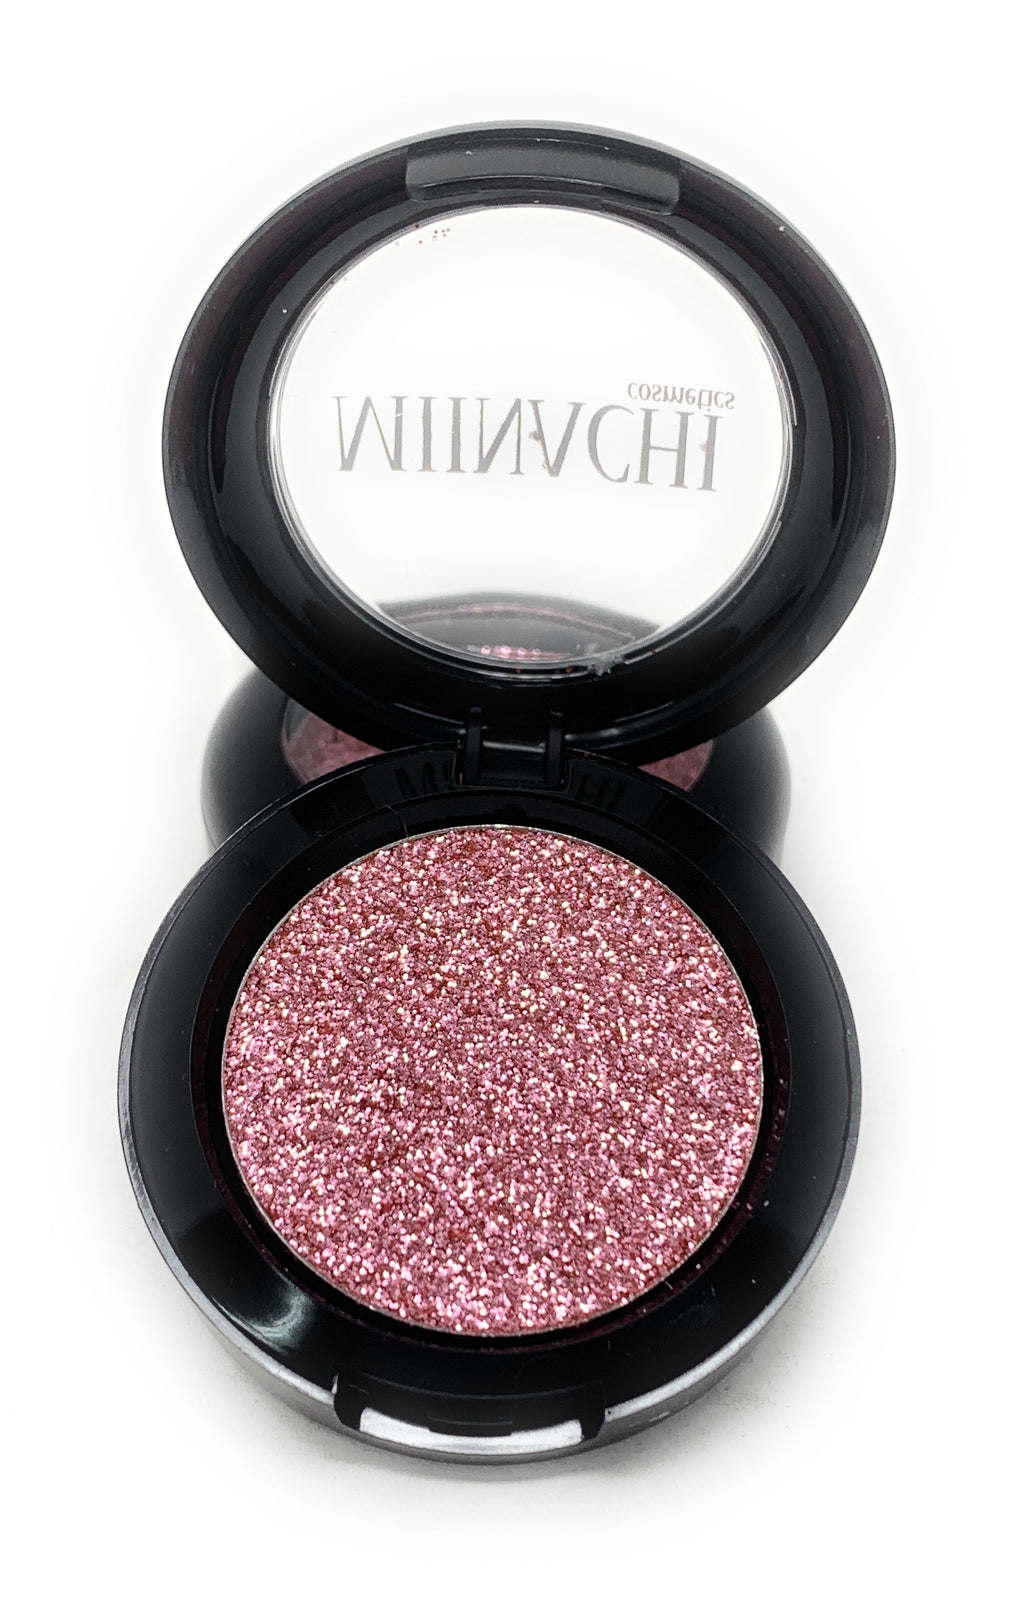 Single Pressed Glitter in the shade Pinky Promise JUMBO Size, No Glue Needed, In Compact, Pigmented, No Fall Out, Glitter, Cosmetic Grade Glitter